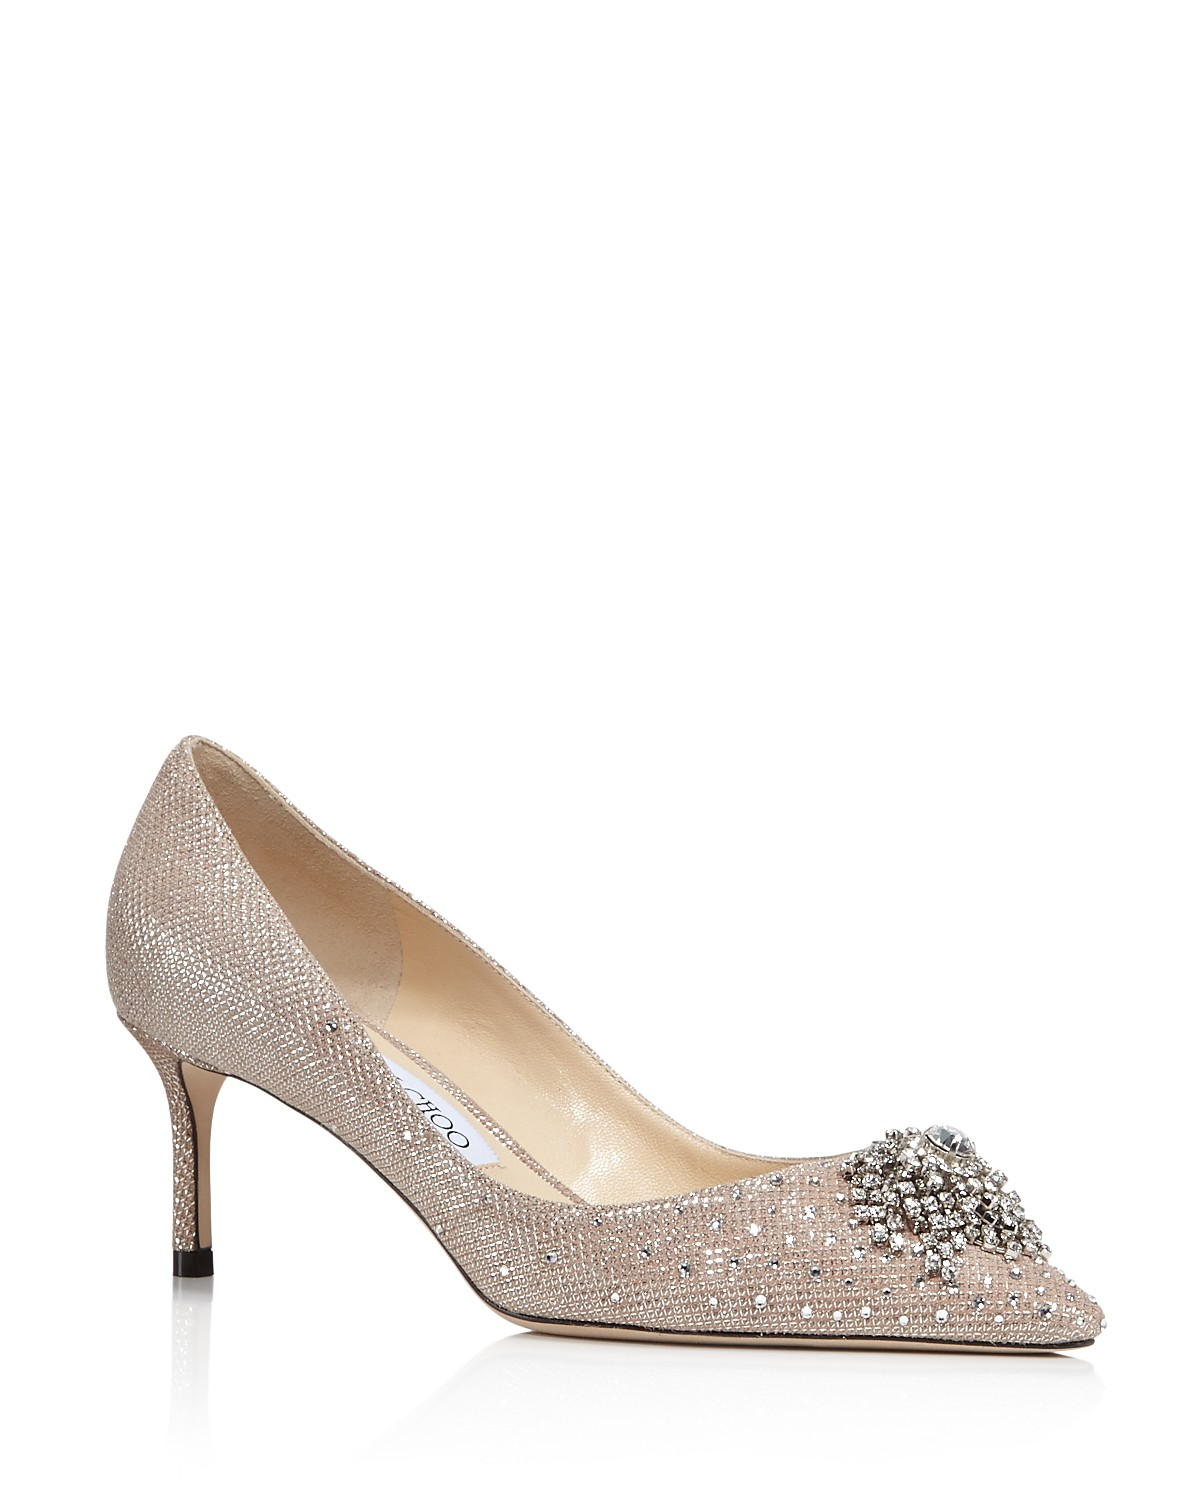 Jimmy choo Women's Joan 60 Glitter Mesh & Leather Pointed Toe Mid Heel Pumps lxywISO